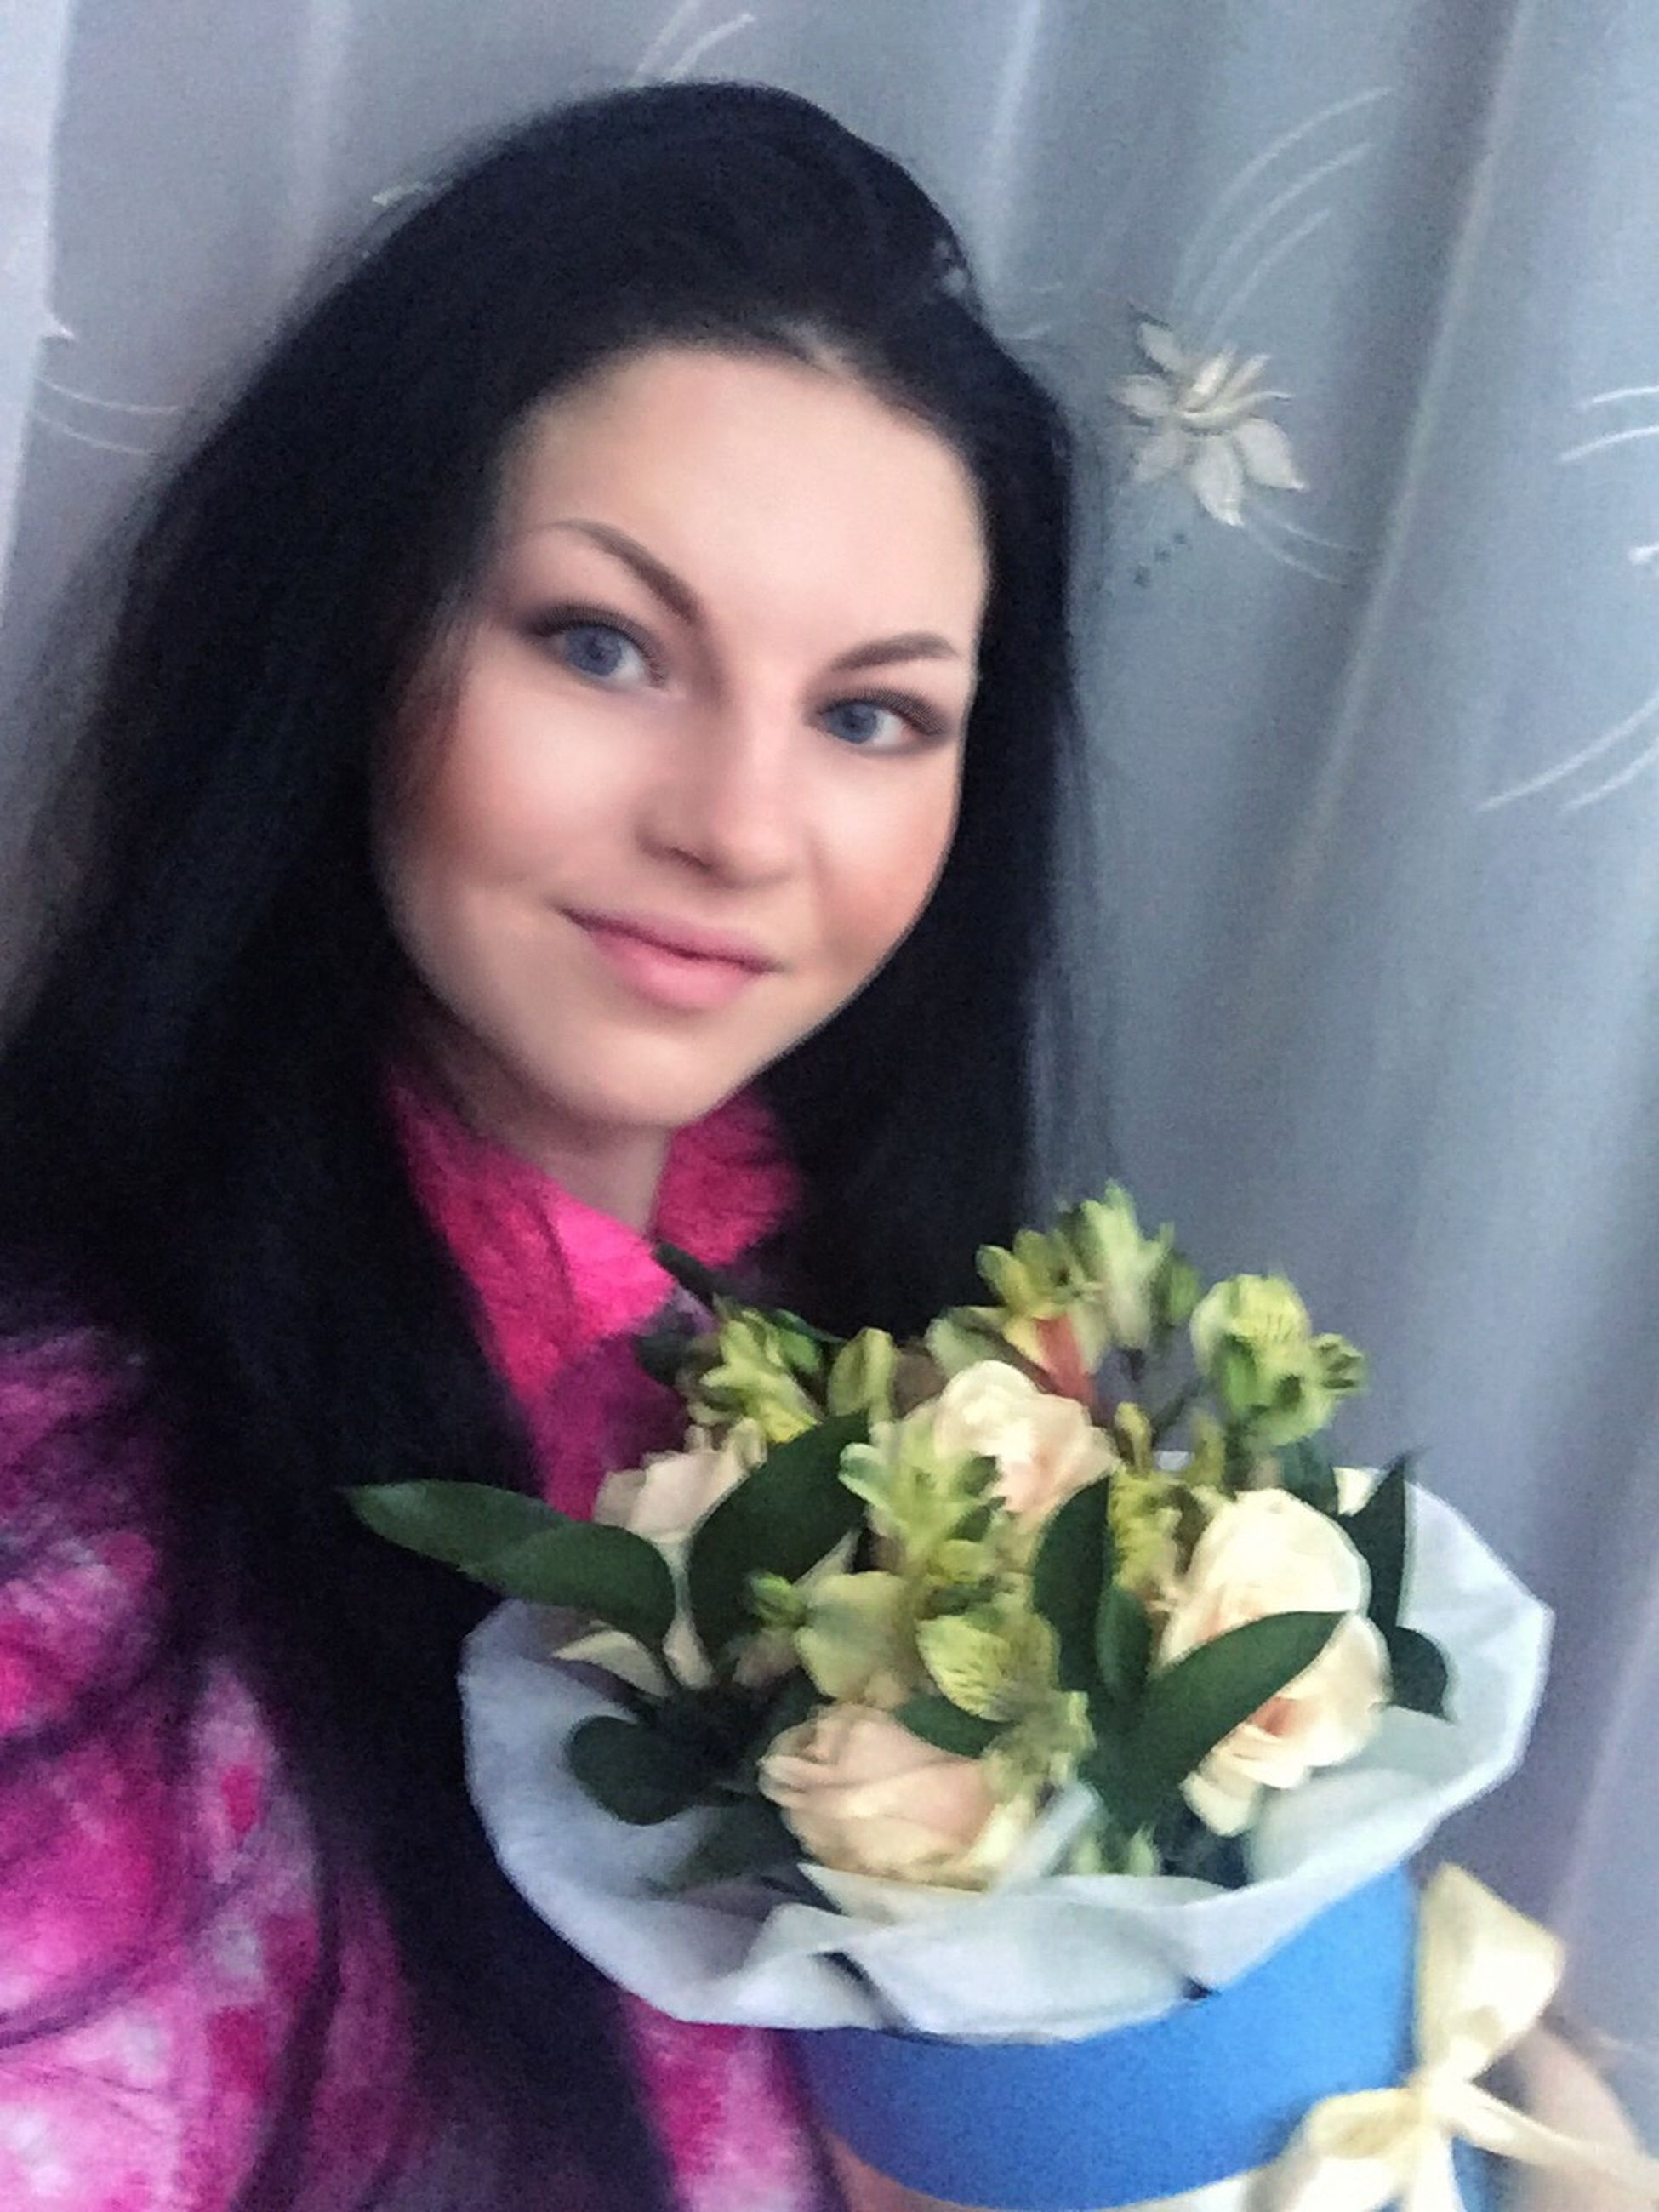 looking at camera, portrait, flower, beautiful woman, waist up, young women, one person, lifestyles, real people, young adult, smiling, headshot, close-up, indoors, freshness, only women, beauty, adults only, bride, bouquet, beauty in nature, nature, wedding dress, one young woman only, adult, people, day